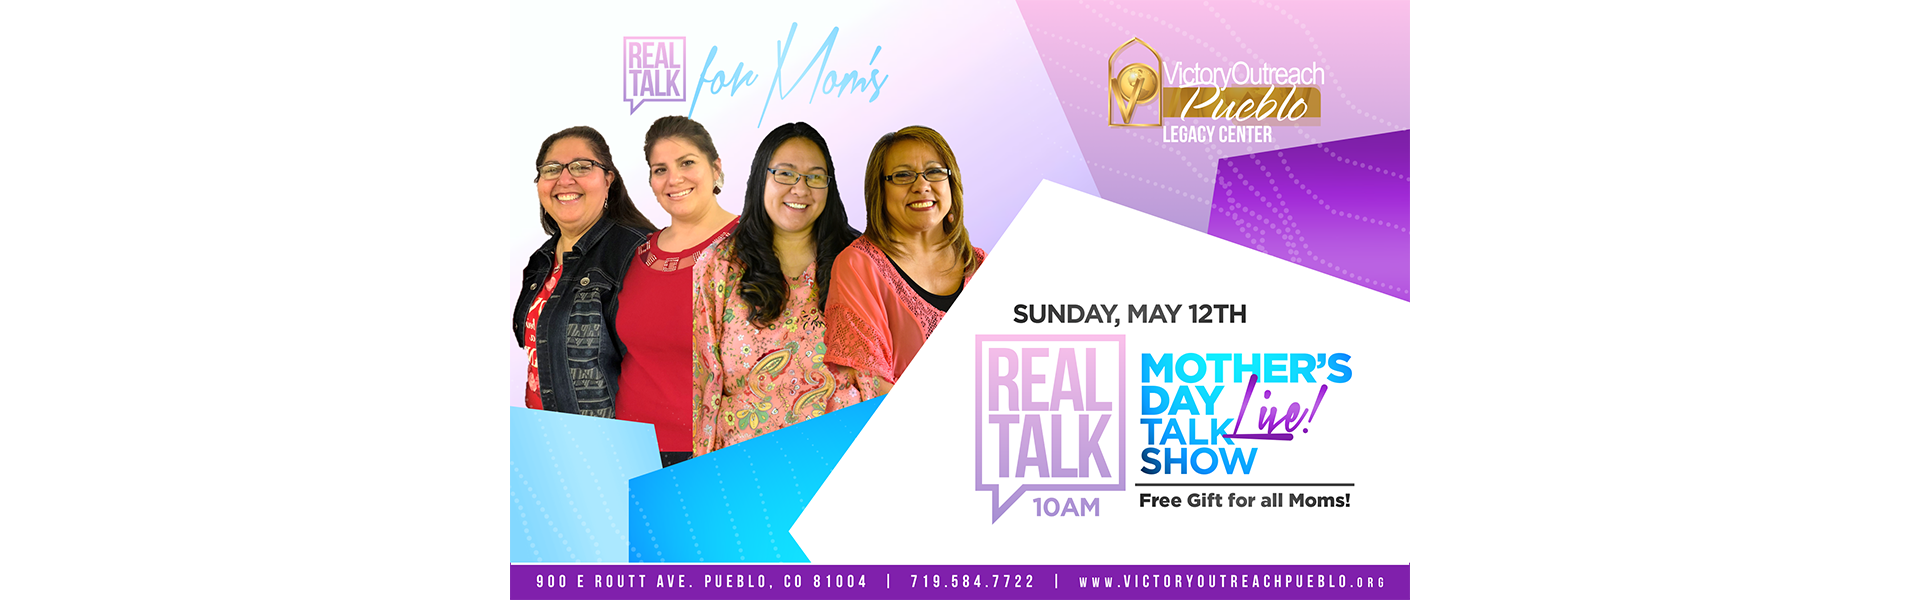 Mother's Day Talk Show REAL TALK May 12